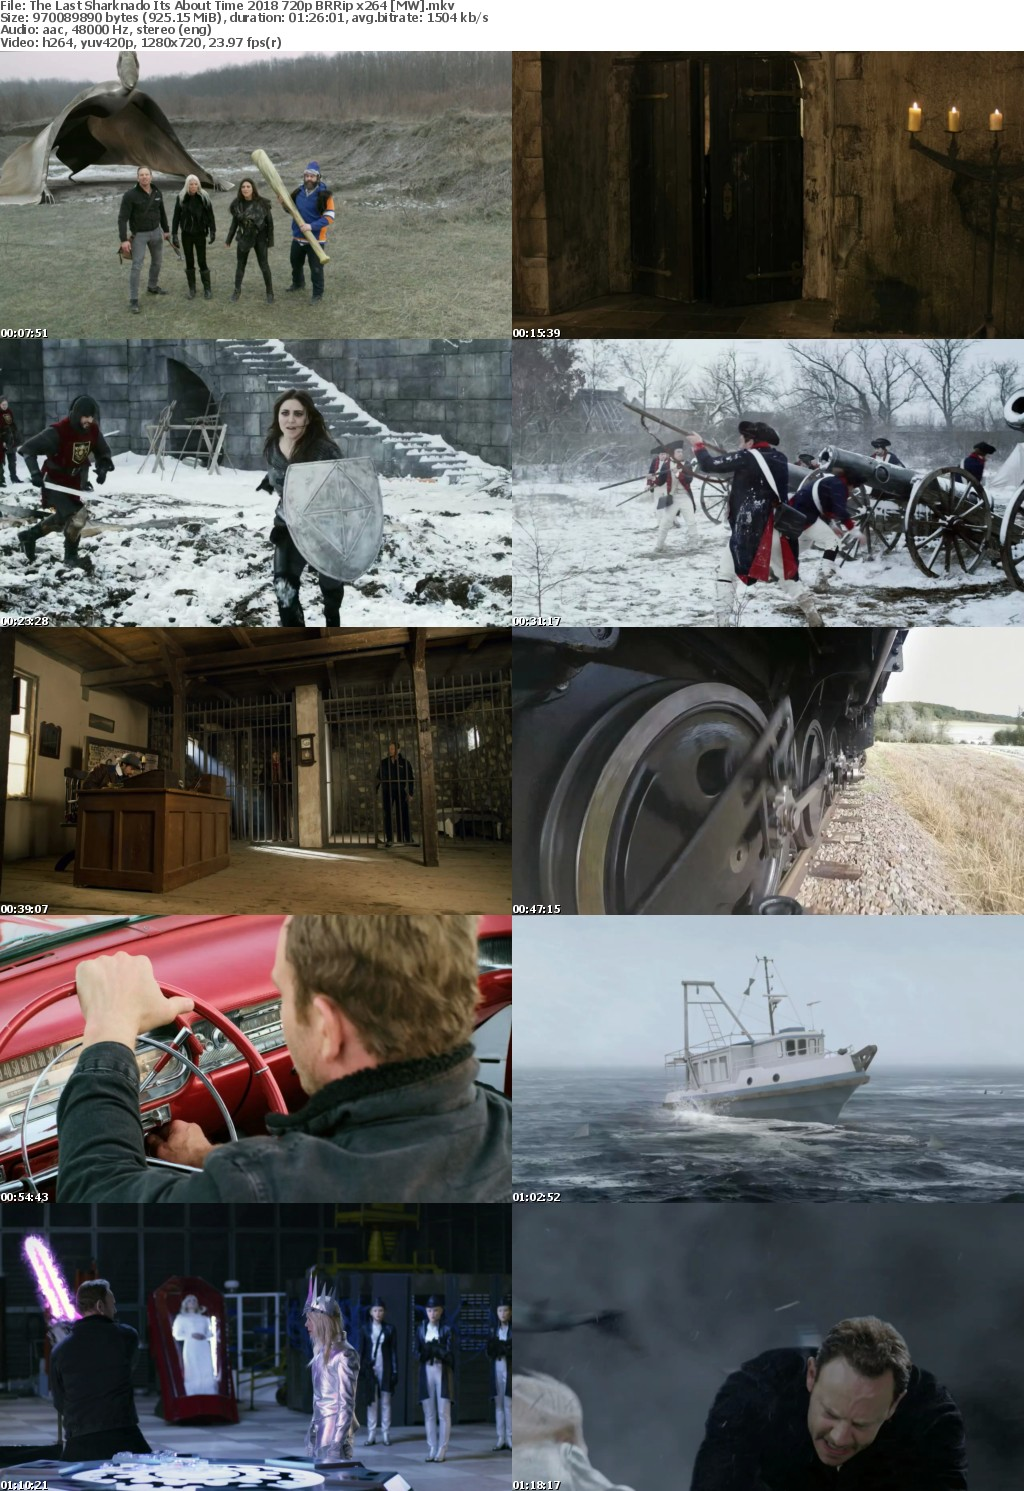 The Last Sharknado Its About Time (2018) 720p BRRip x264 MW